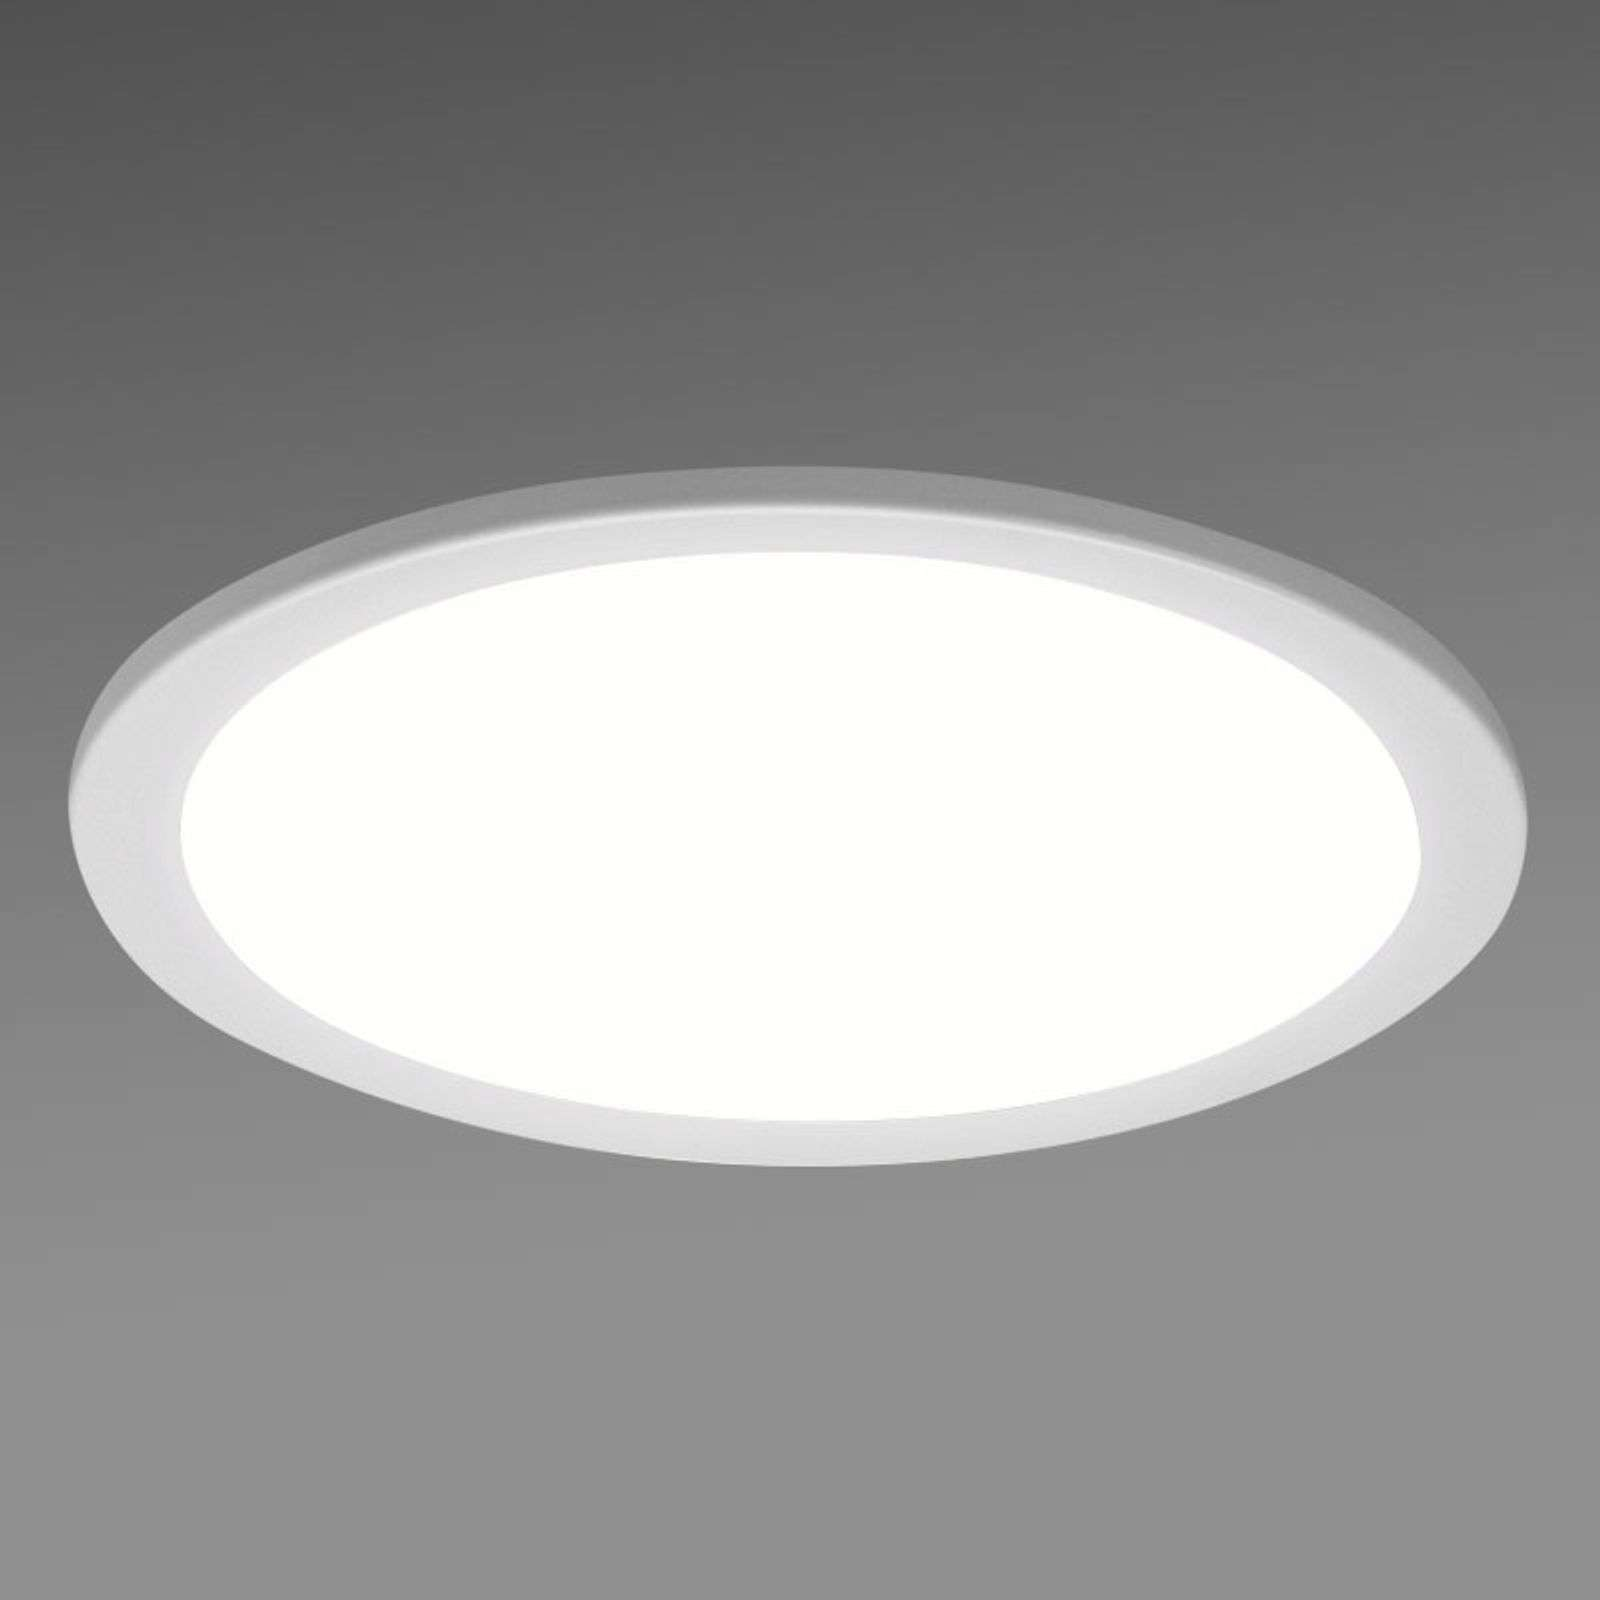 Ronde LED inbouw downlight SBLG, 3.000 K